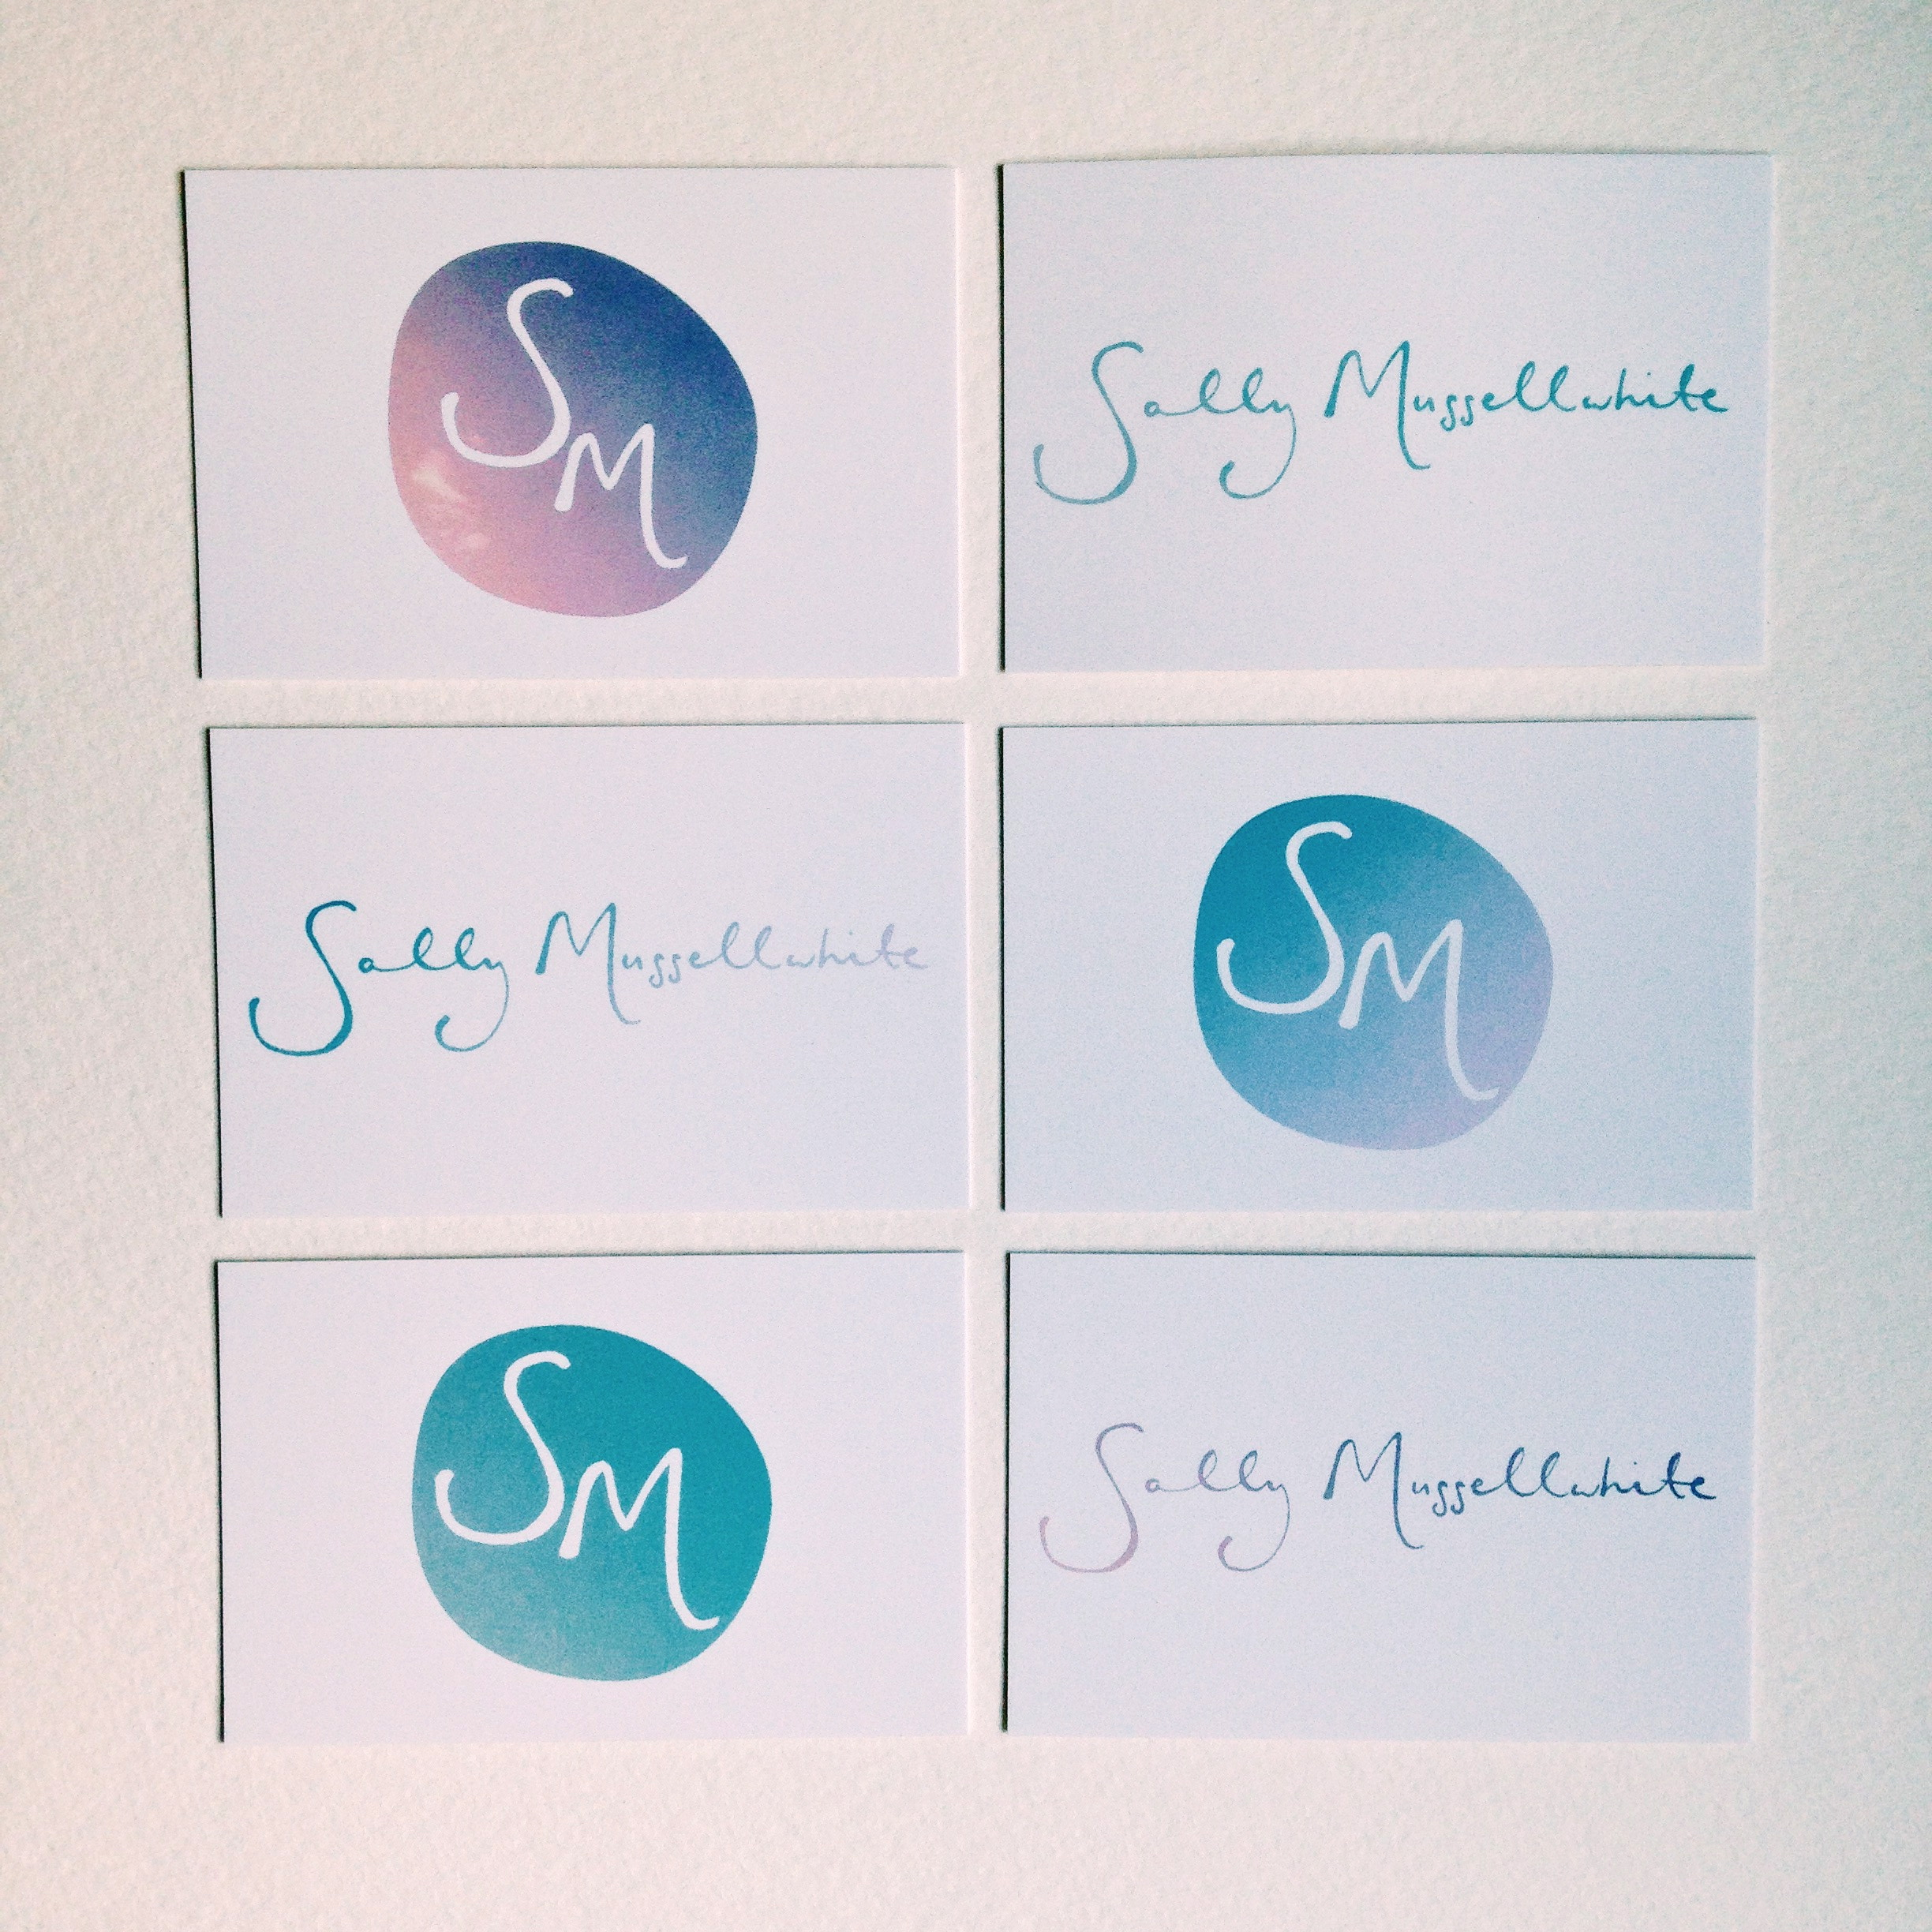 sally mussellwhite | business cards